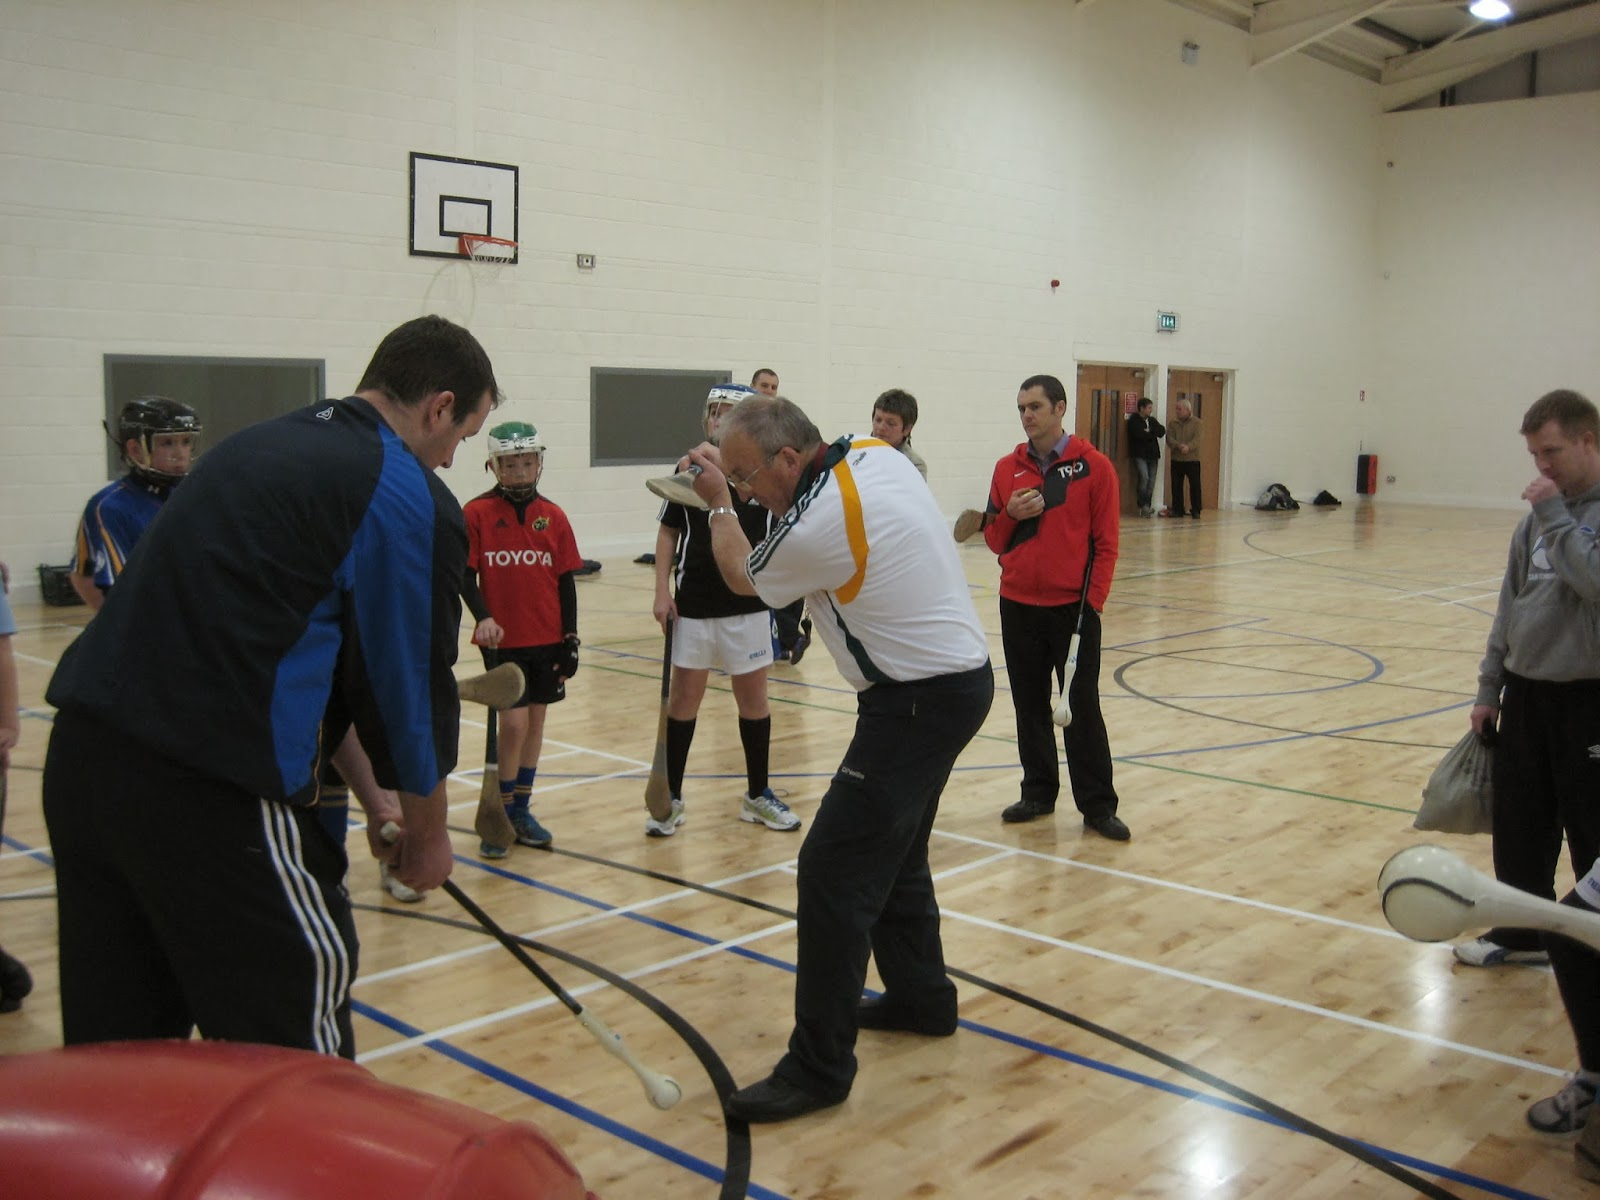 Photos from the Paudie Butler Hurling Workshop in local media